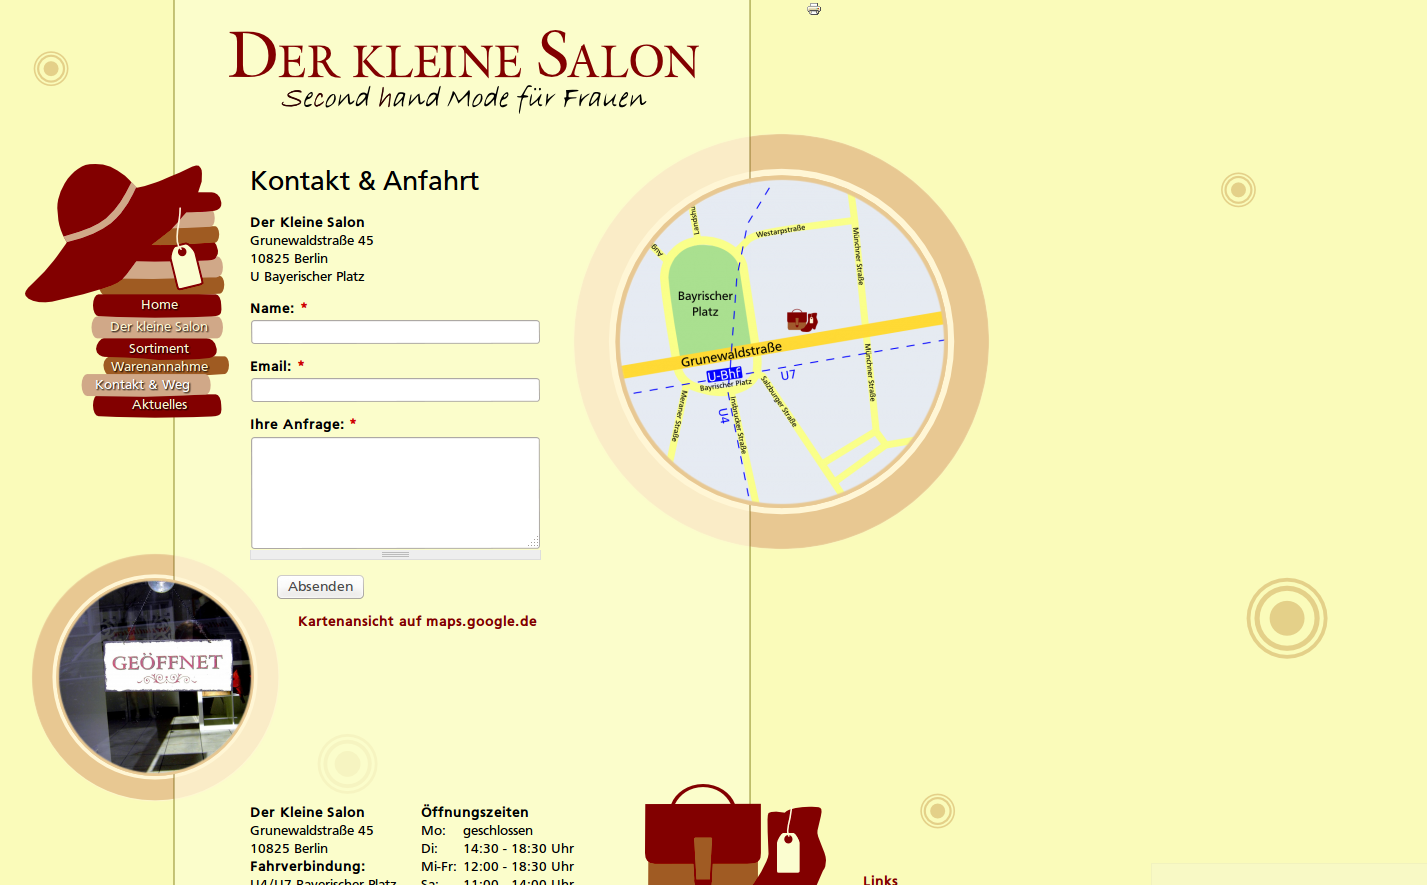 Der kleine Salon: Website - Kontakt